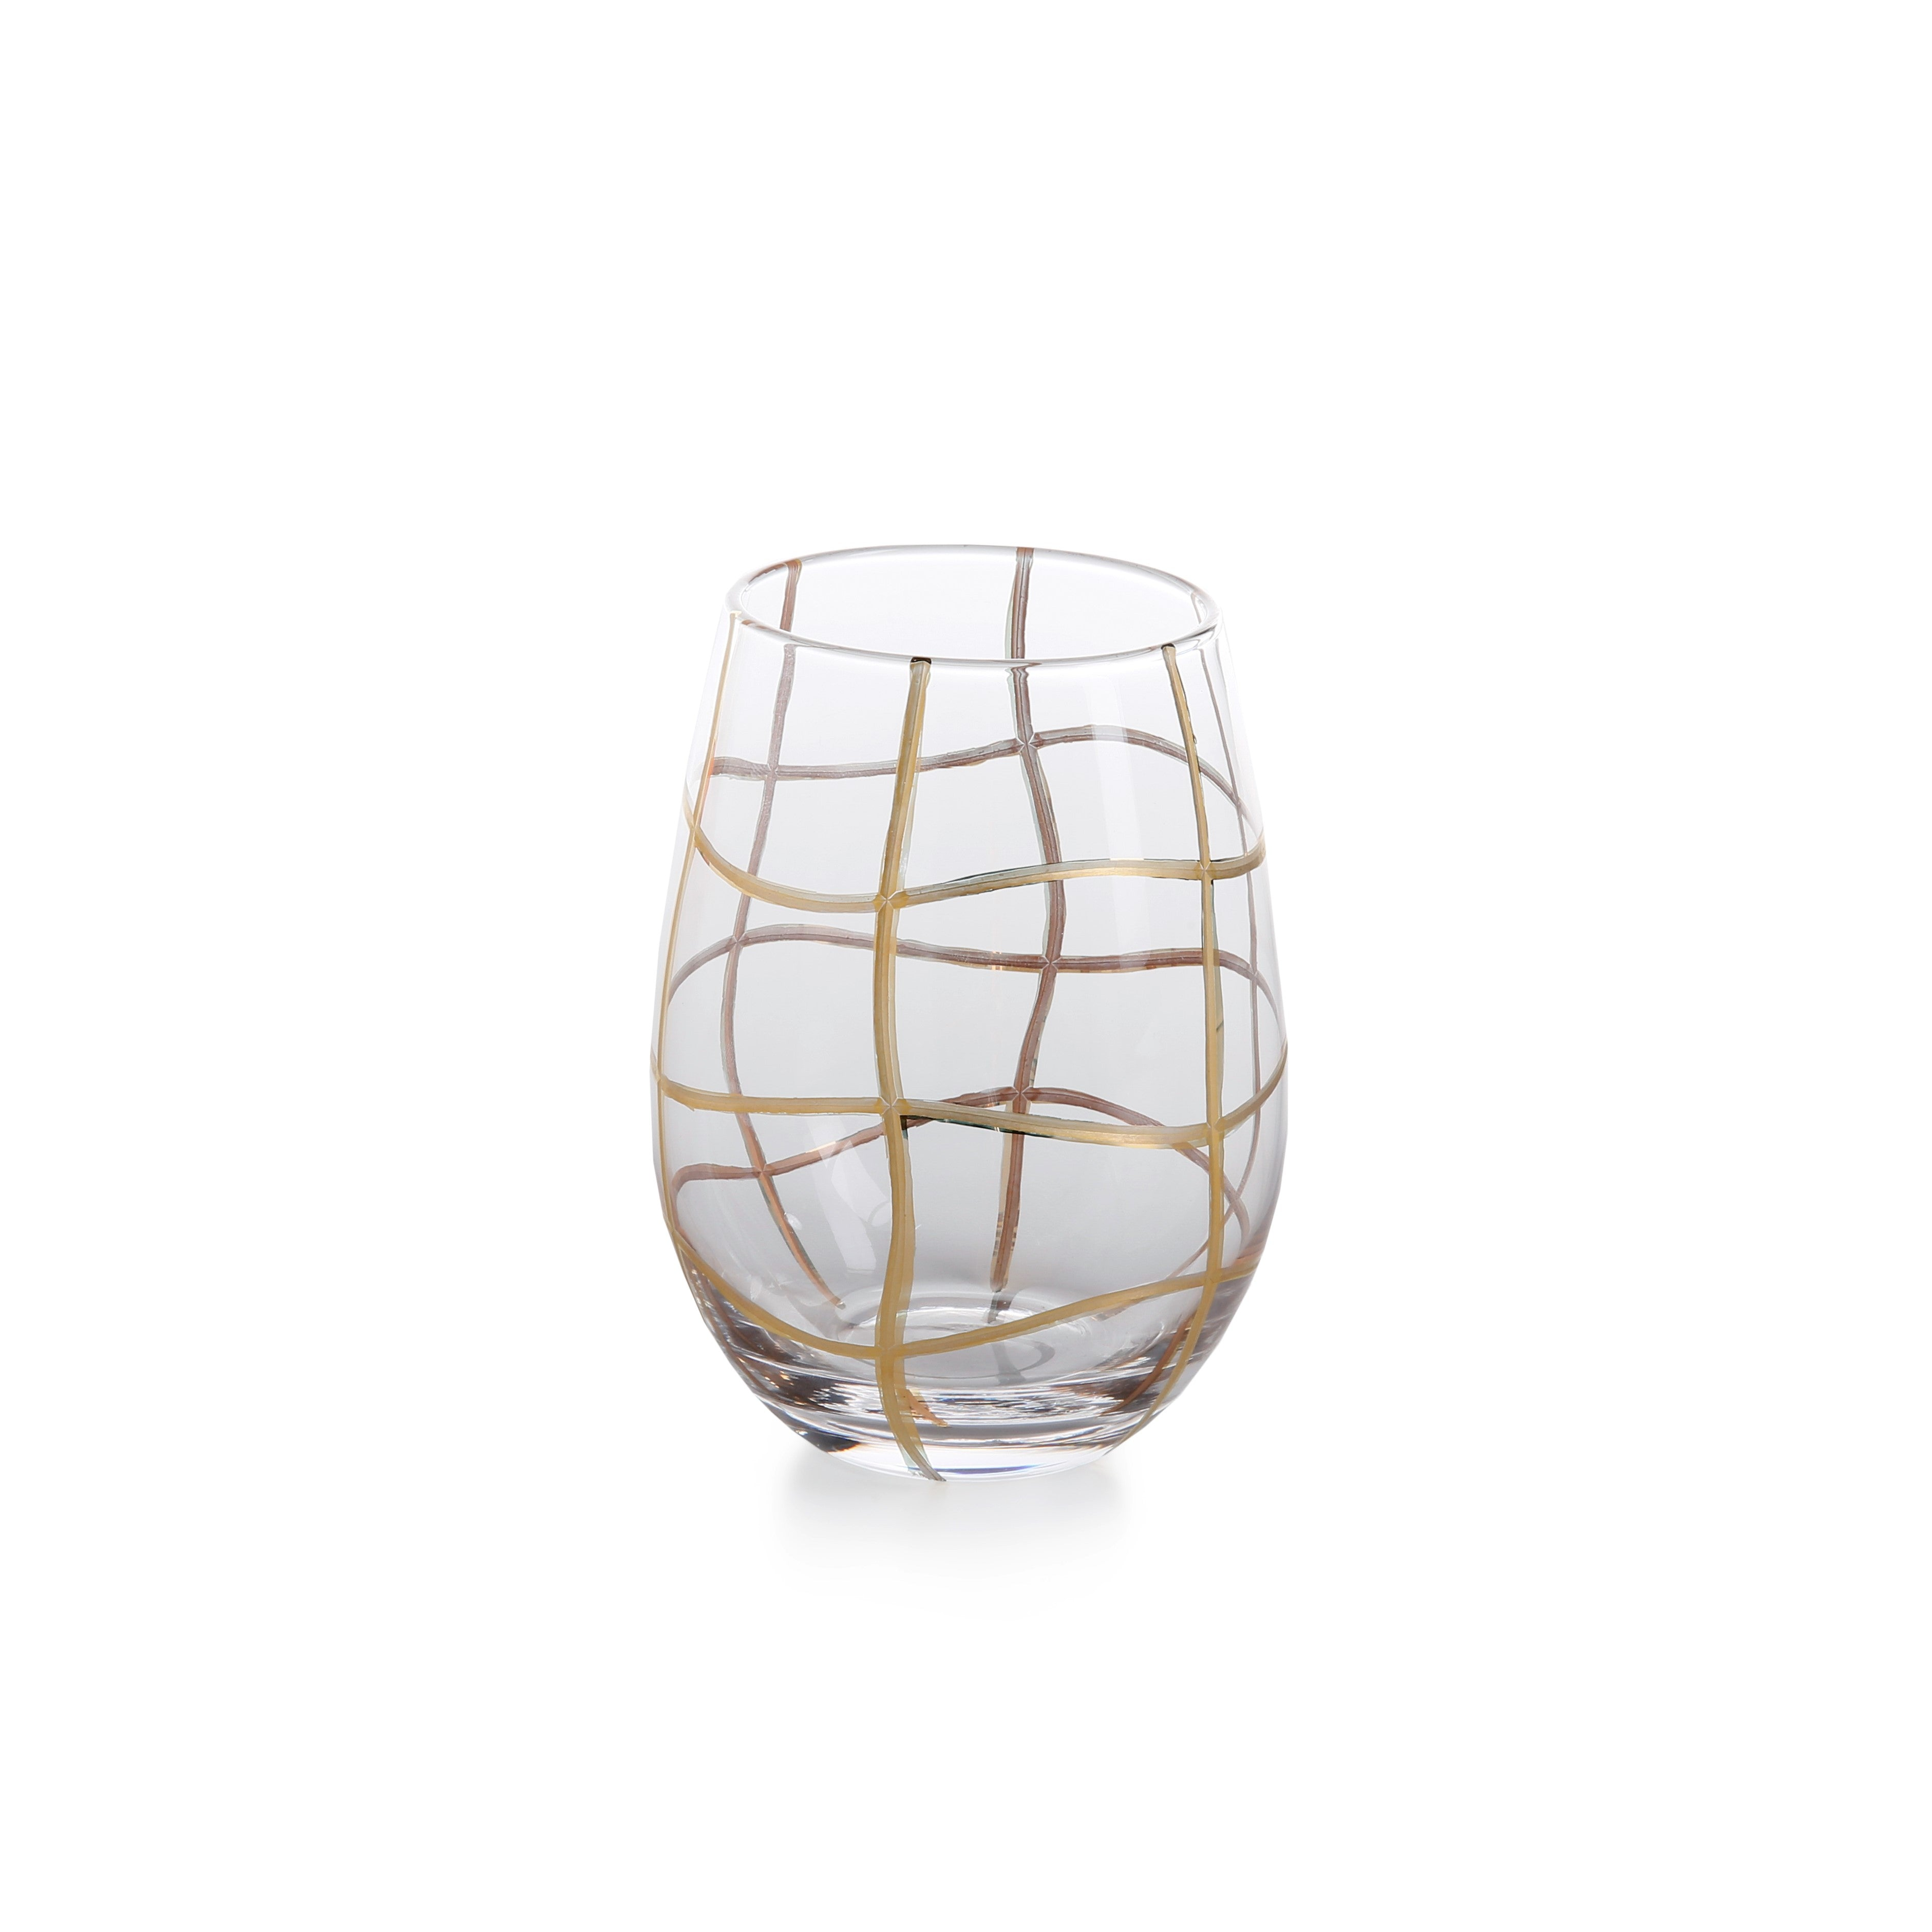 Groove Glasses & Drinkware - Set of 4 - CARLYLE AVENUE